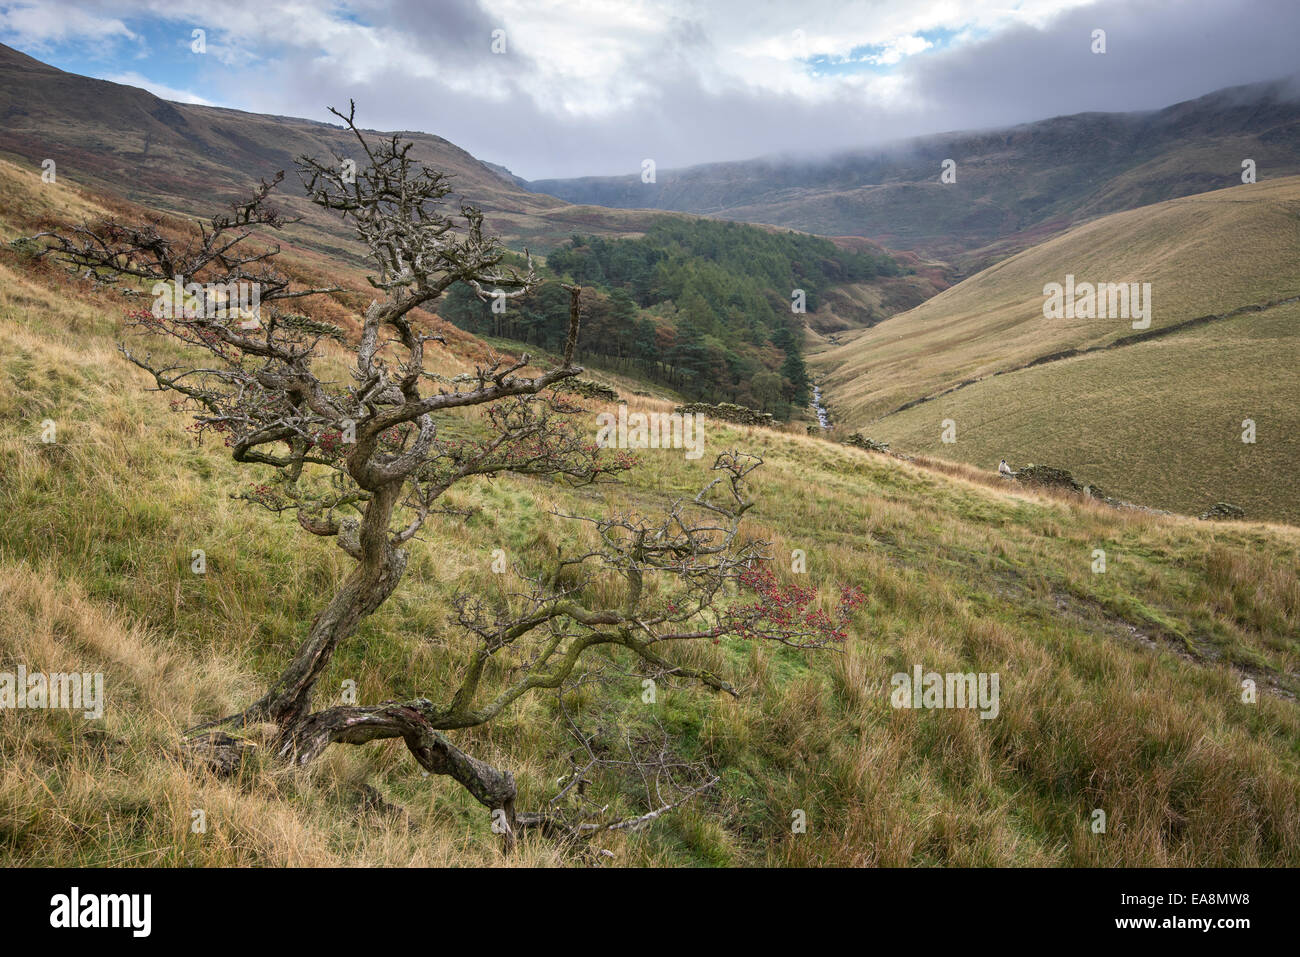 Peak District landscape around Kinder reservoir near Hayfield, Derbyshire. Twisted Hawthorn tree with berries. - Stock Image